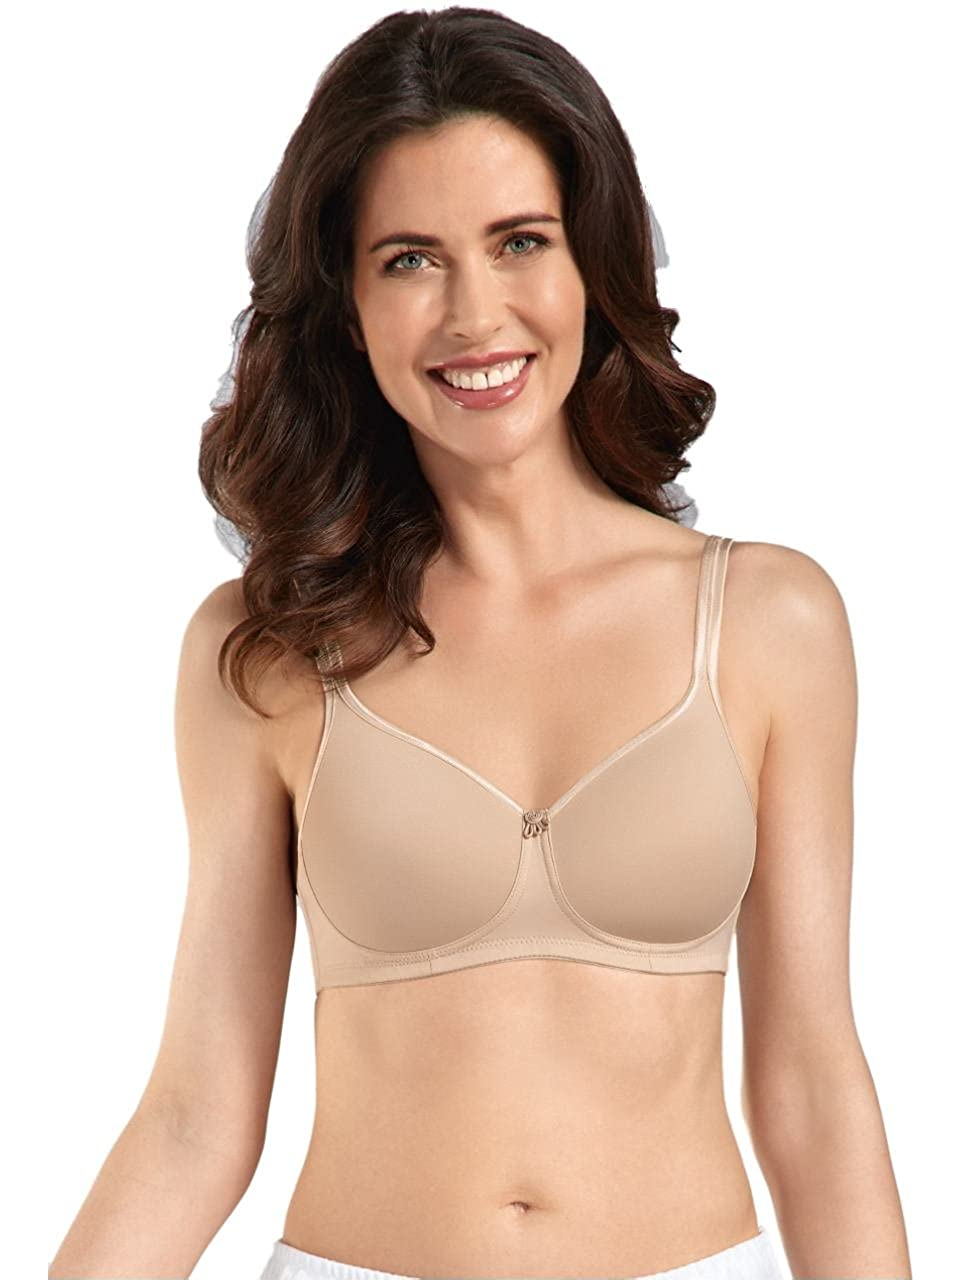 Amoena Pocketed Mastectomy Bra 'Mara' Nude Post Surgery Bra - 36C 1150-F